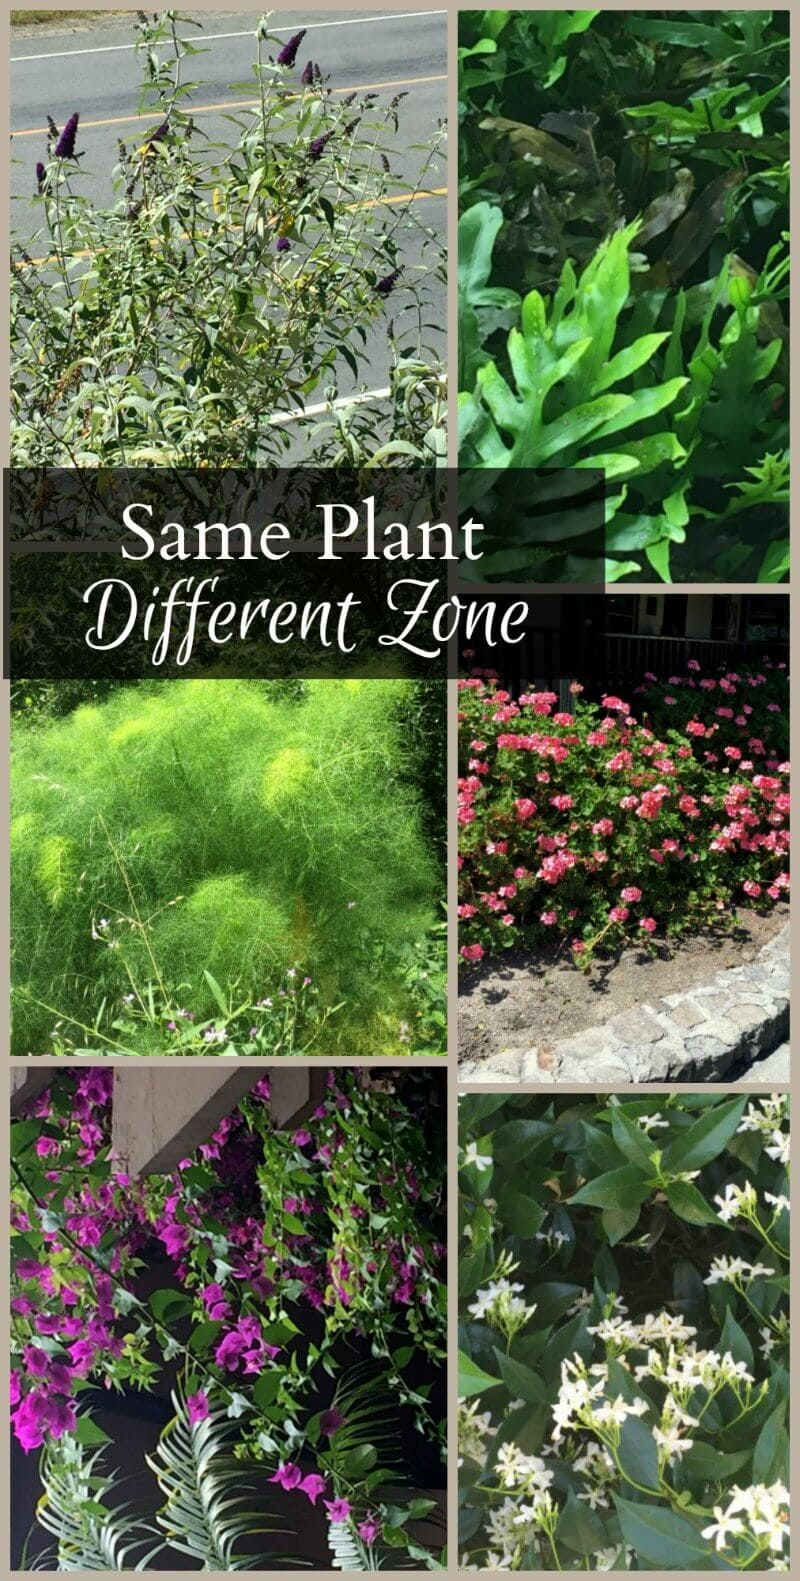 The same plant in different hardiness zones. Plants which are grown as annuals or houseplants are actually weeds or grow huge in other areas.